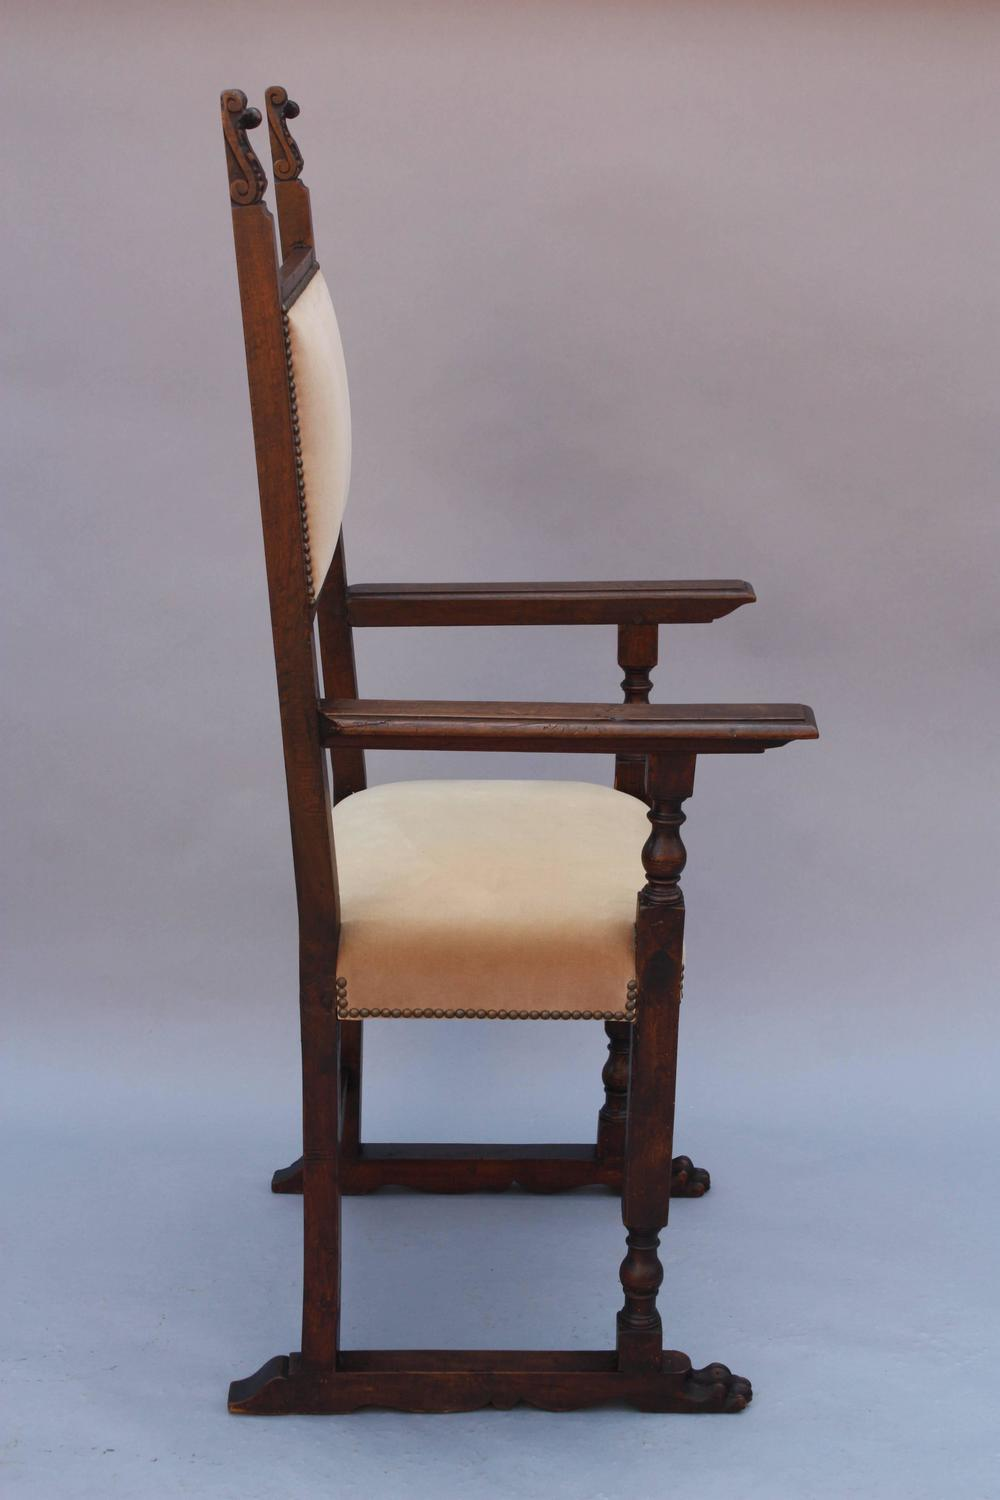 Pair of 1920s Tall Spanish Revival Armchairs at 1stdibs